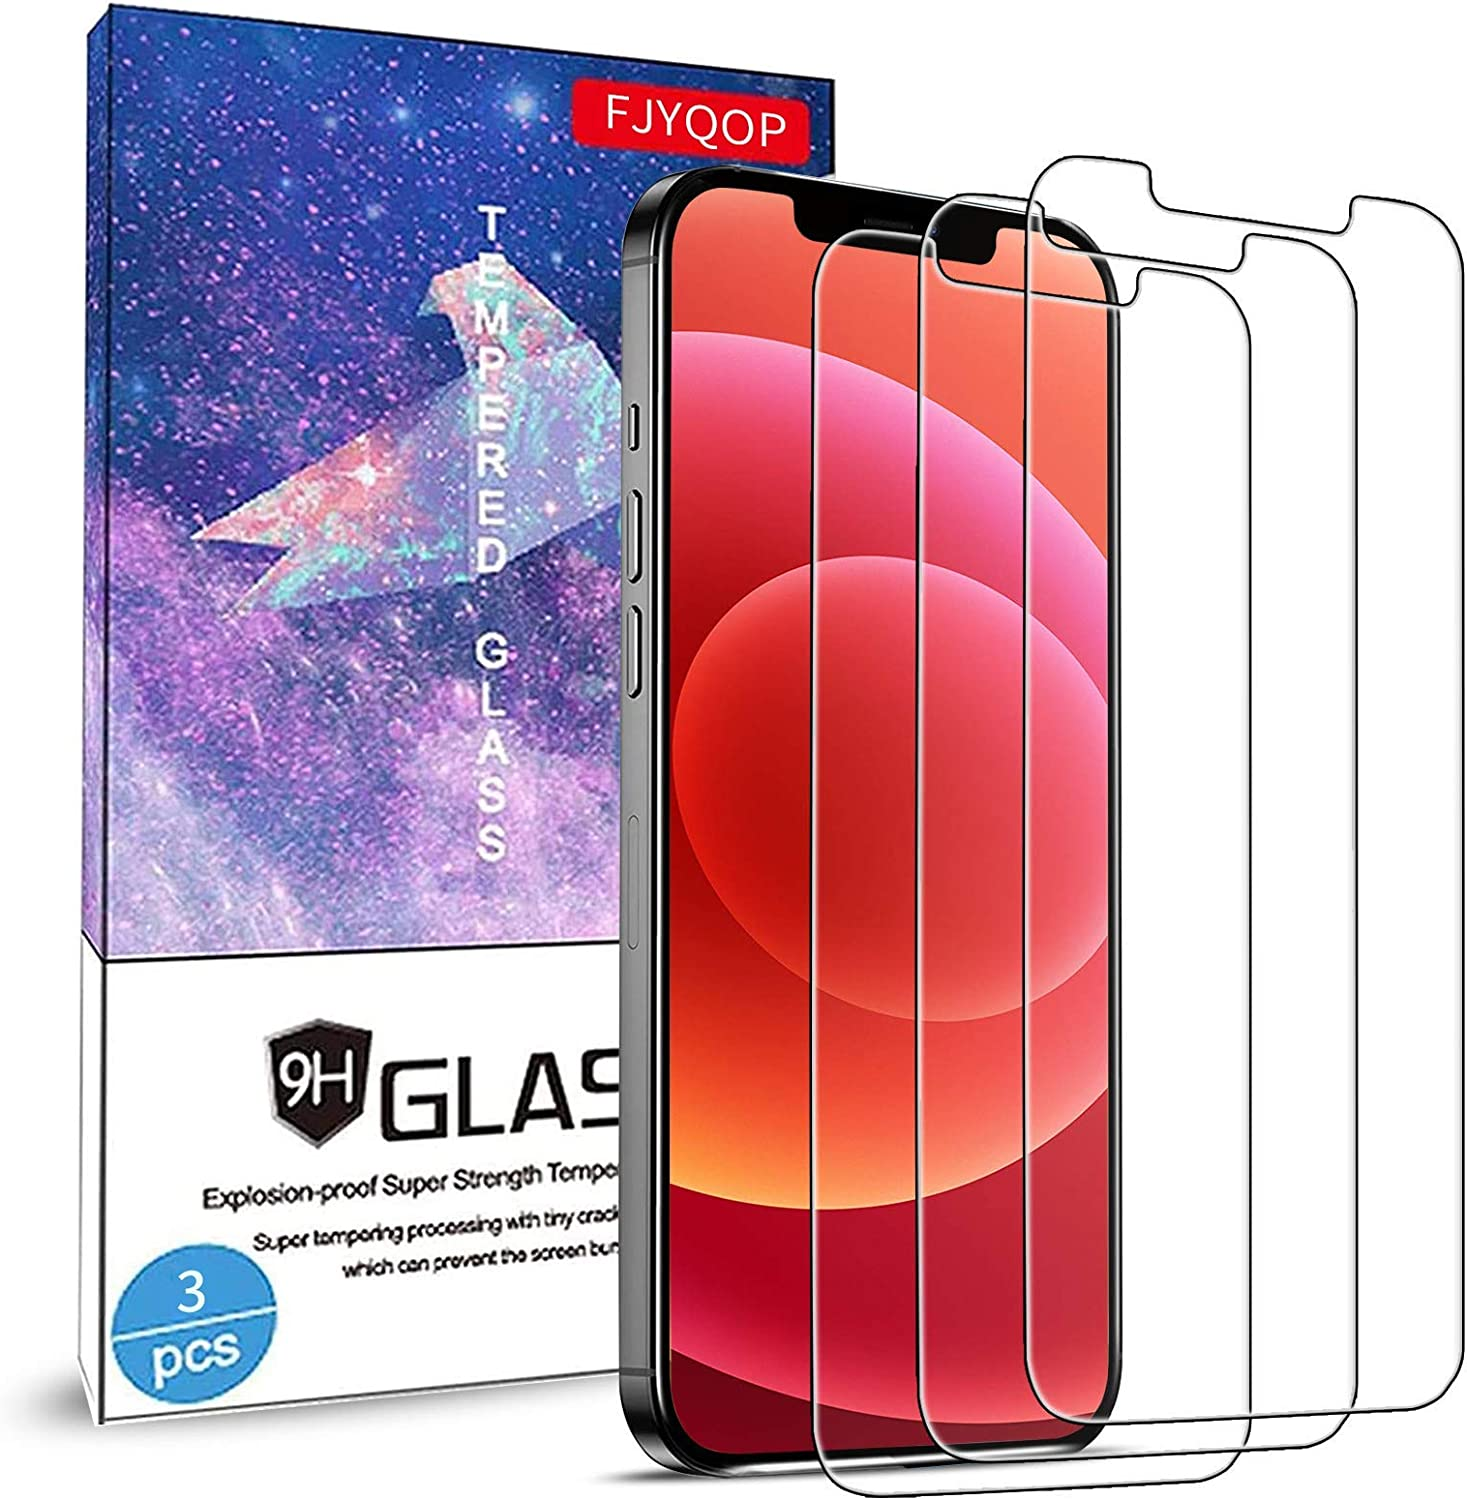 Glass Screen Protector for iPhone 12 Pro Max 6.7 Inch 3 Pack, 9H Tempered Glass Film, HD Clear, Bubble-Free Anti-Scratch for iPhone 12 Pro Max 5G Screen Protector Work Most Case